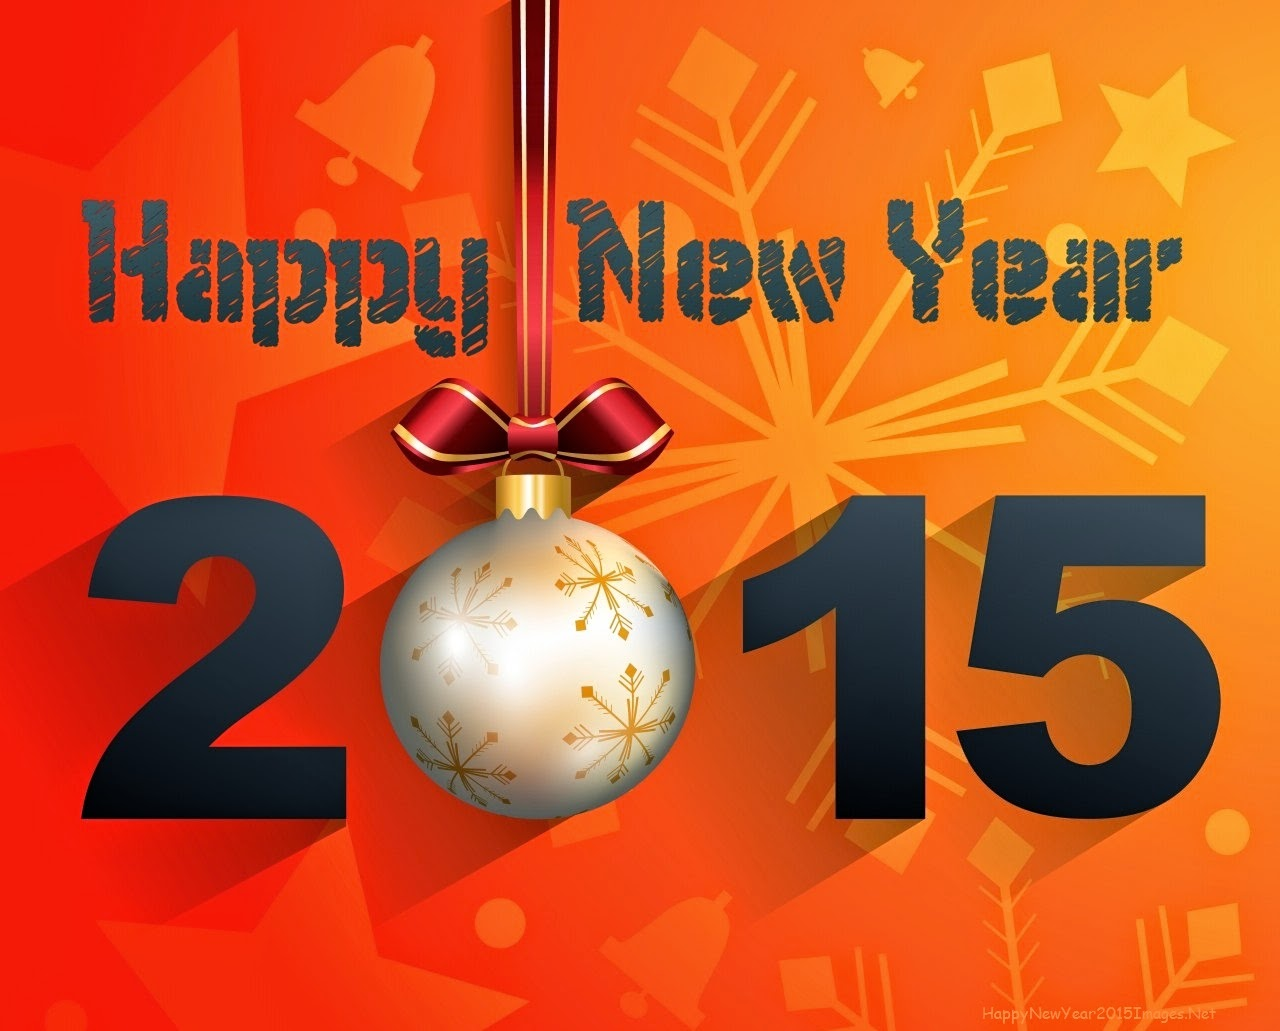 Happy New Year 2015 With Decorations On Orange Background